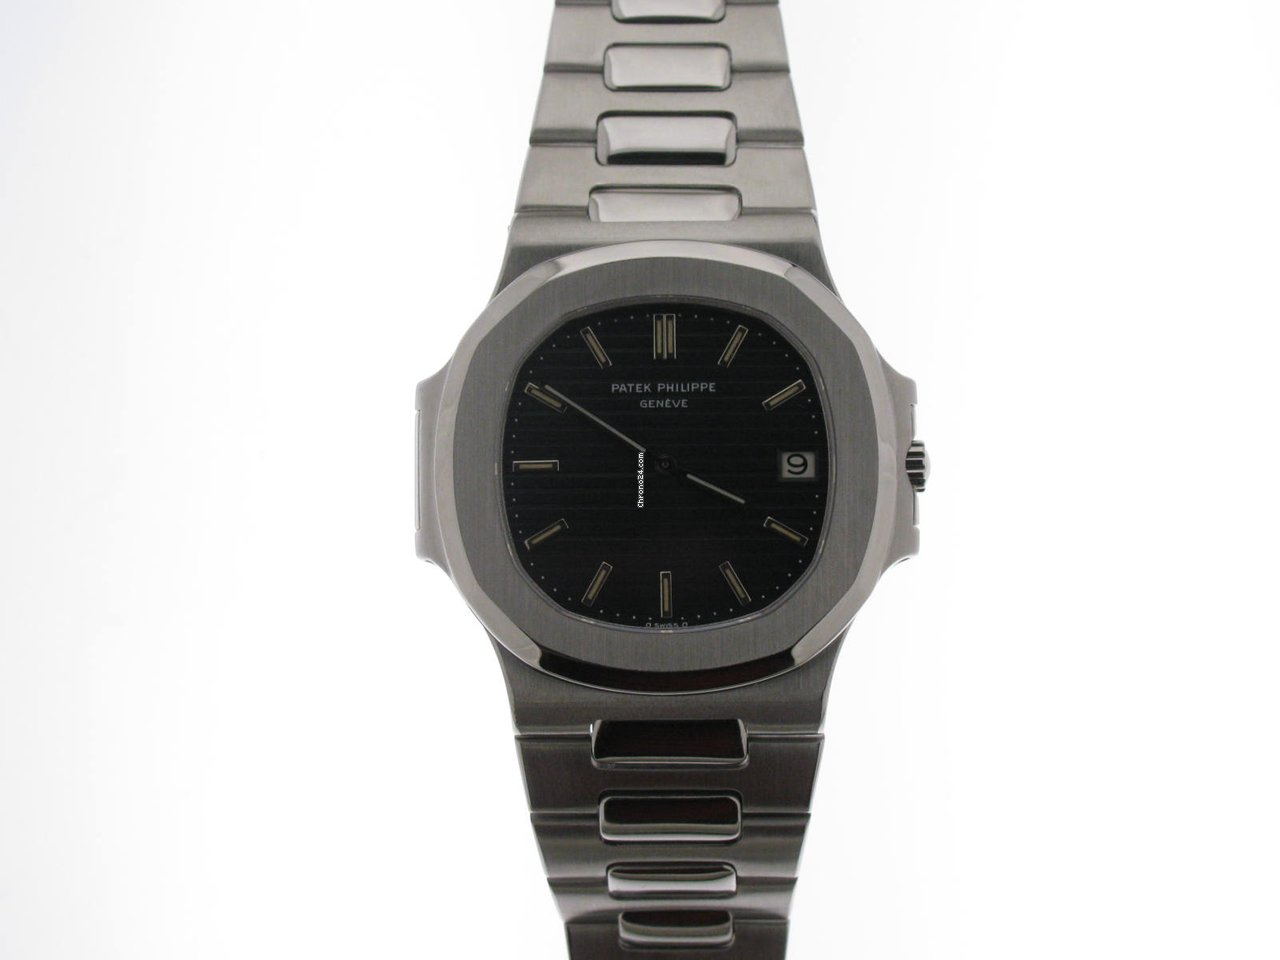 Patek Philippe Nautilus Jumbo 3700 For 99 068 For Sale From A